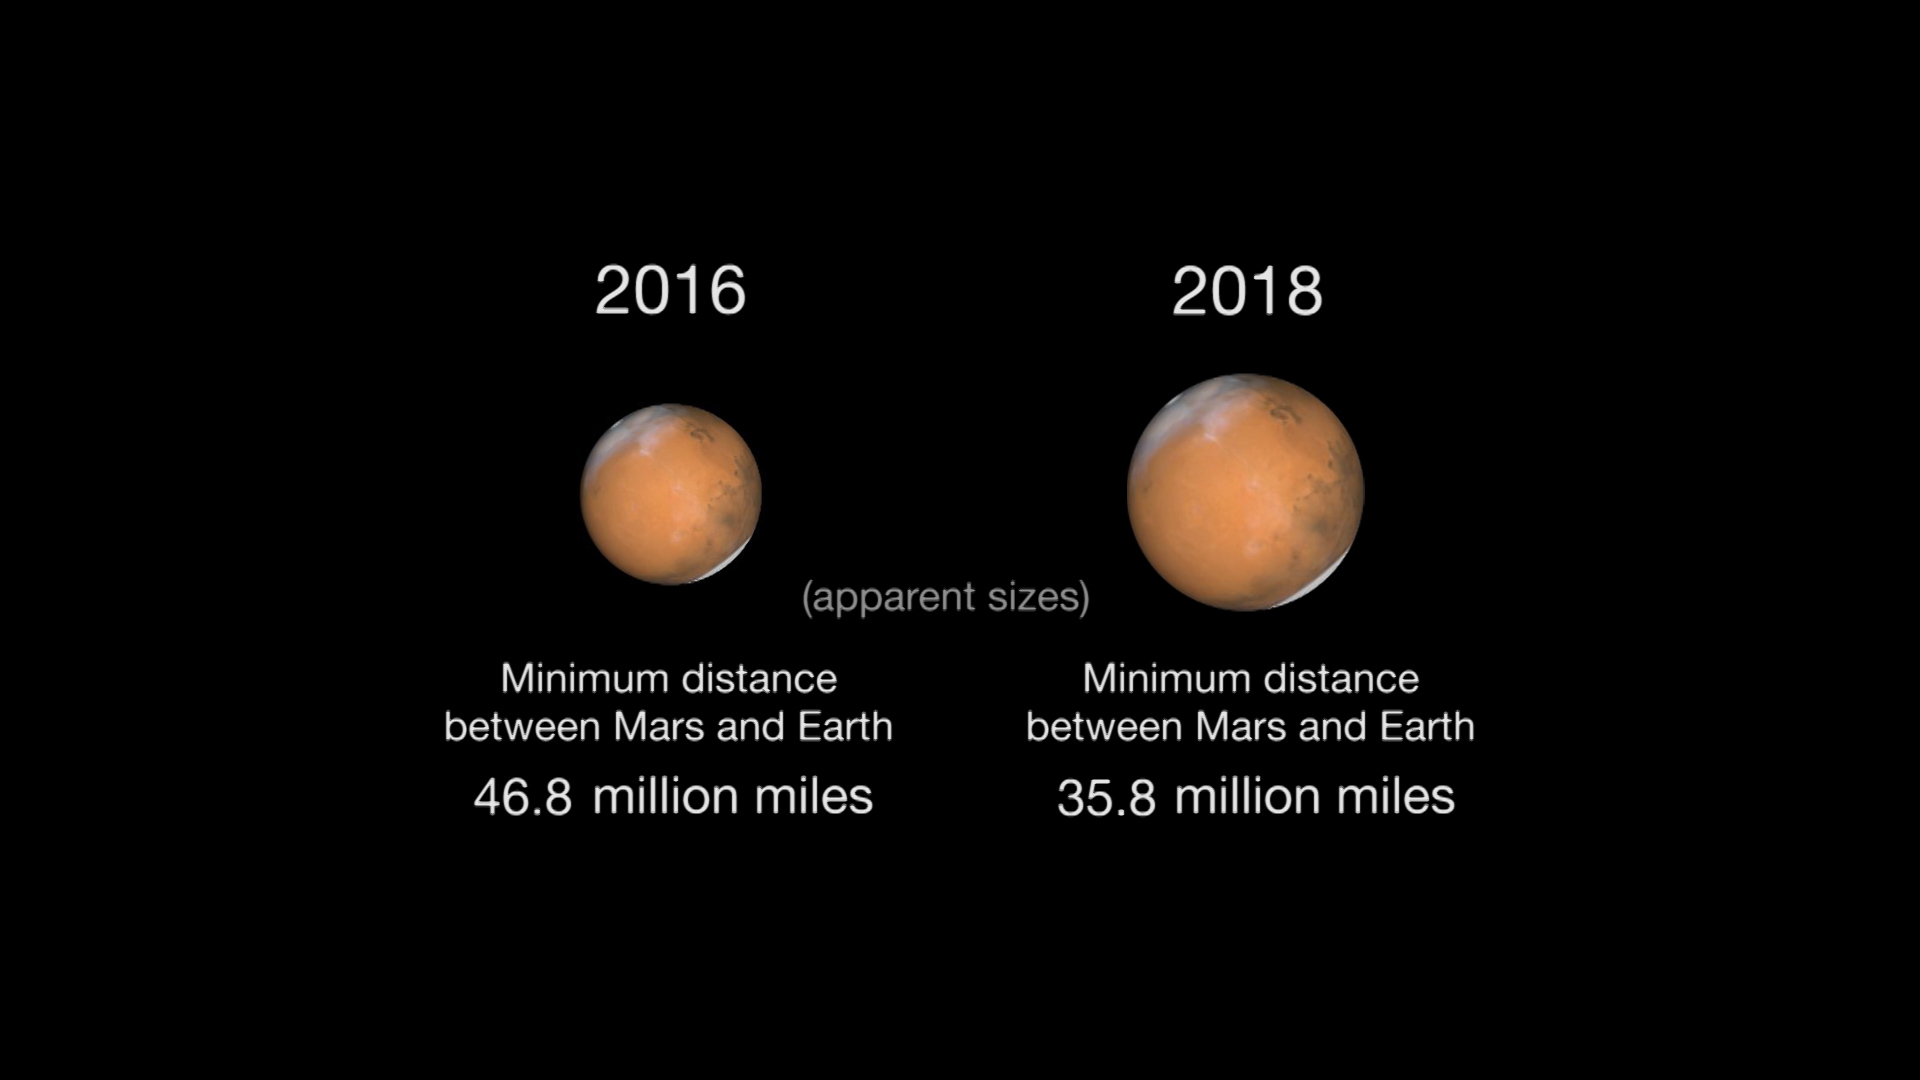 Next Mars Close Approach in 2018